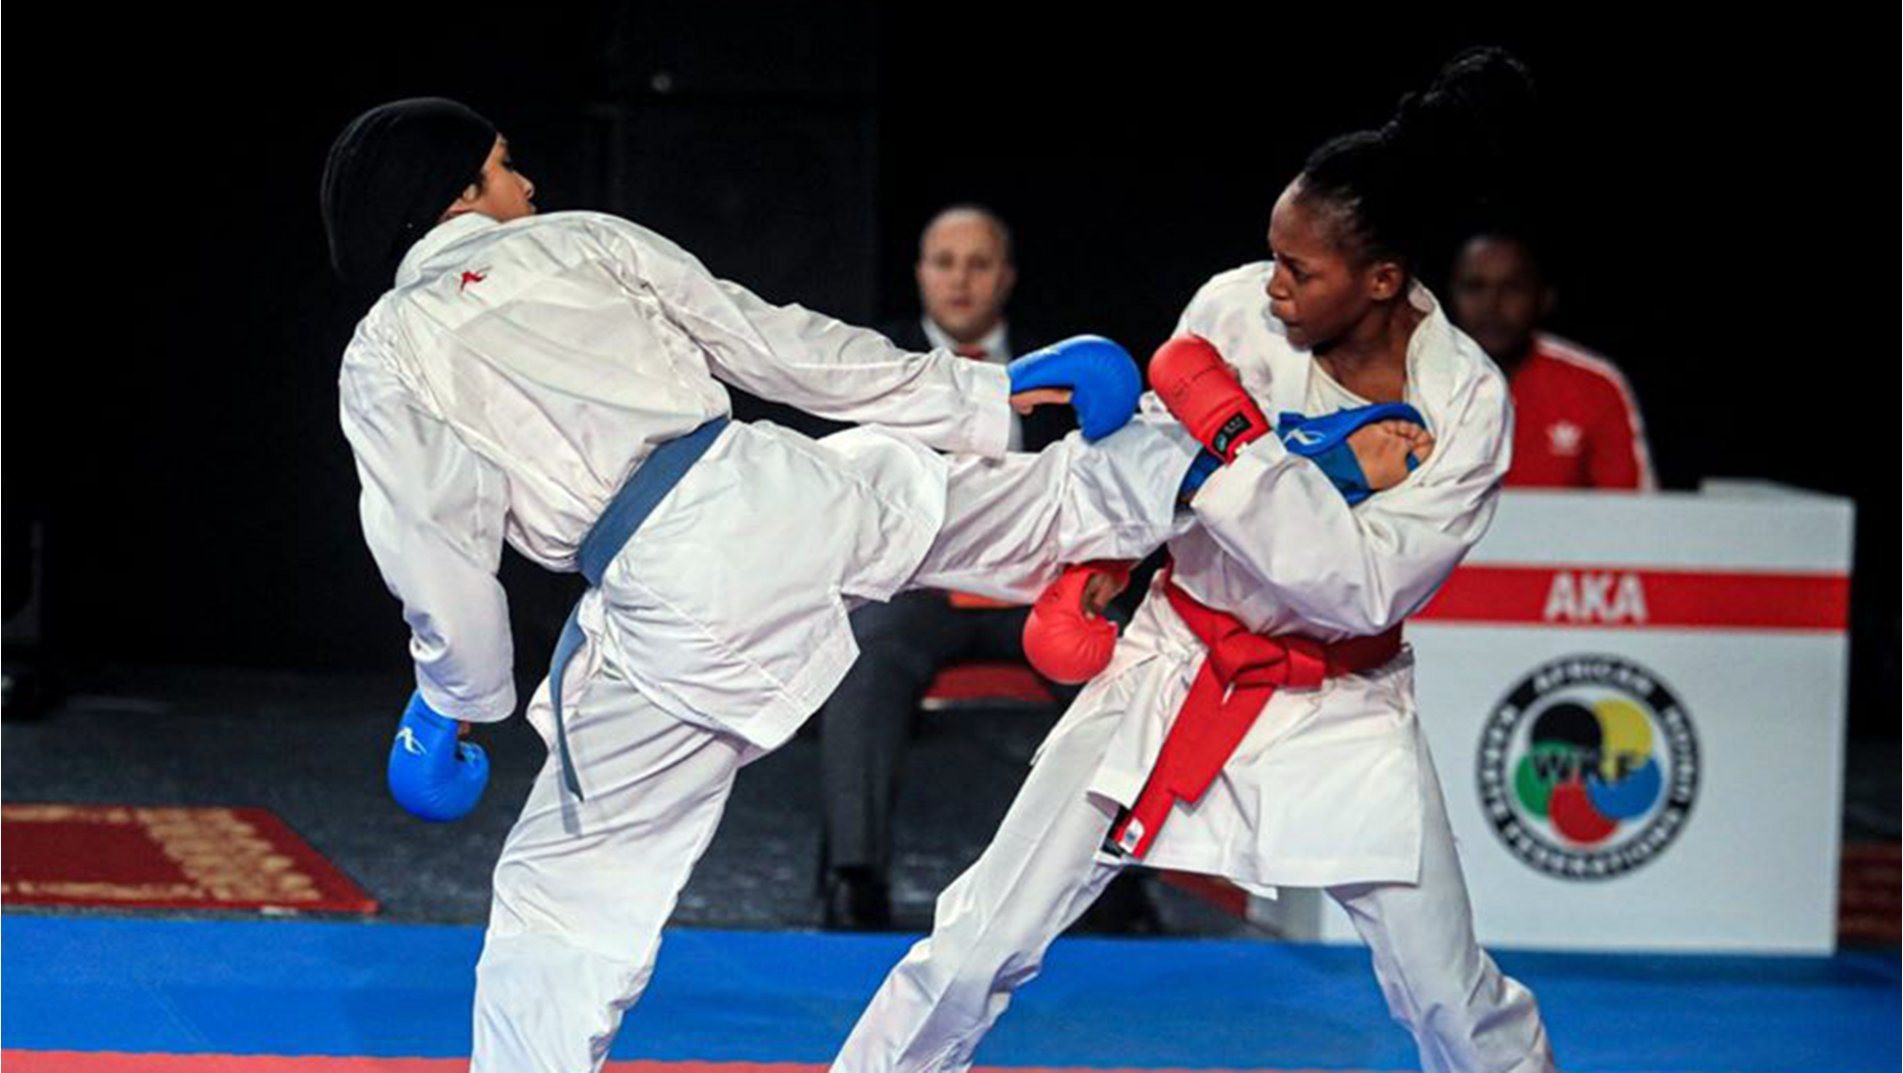 Morocco produce outstanding performance in day 2 of UFAK Senior & Junior Championships